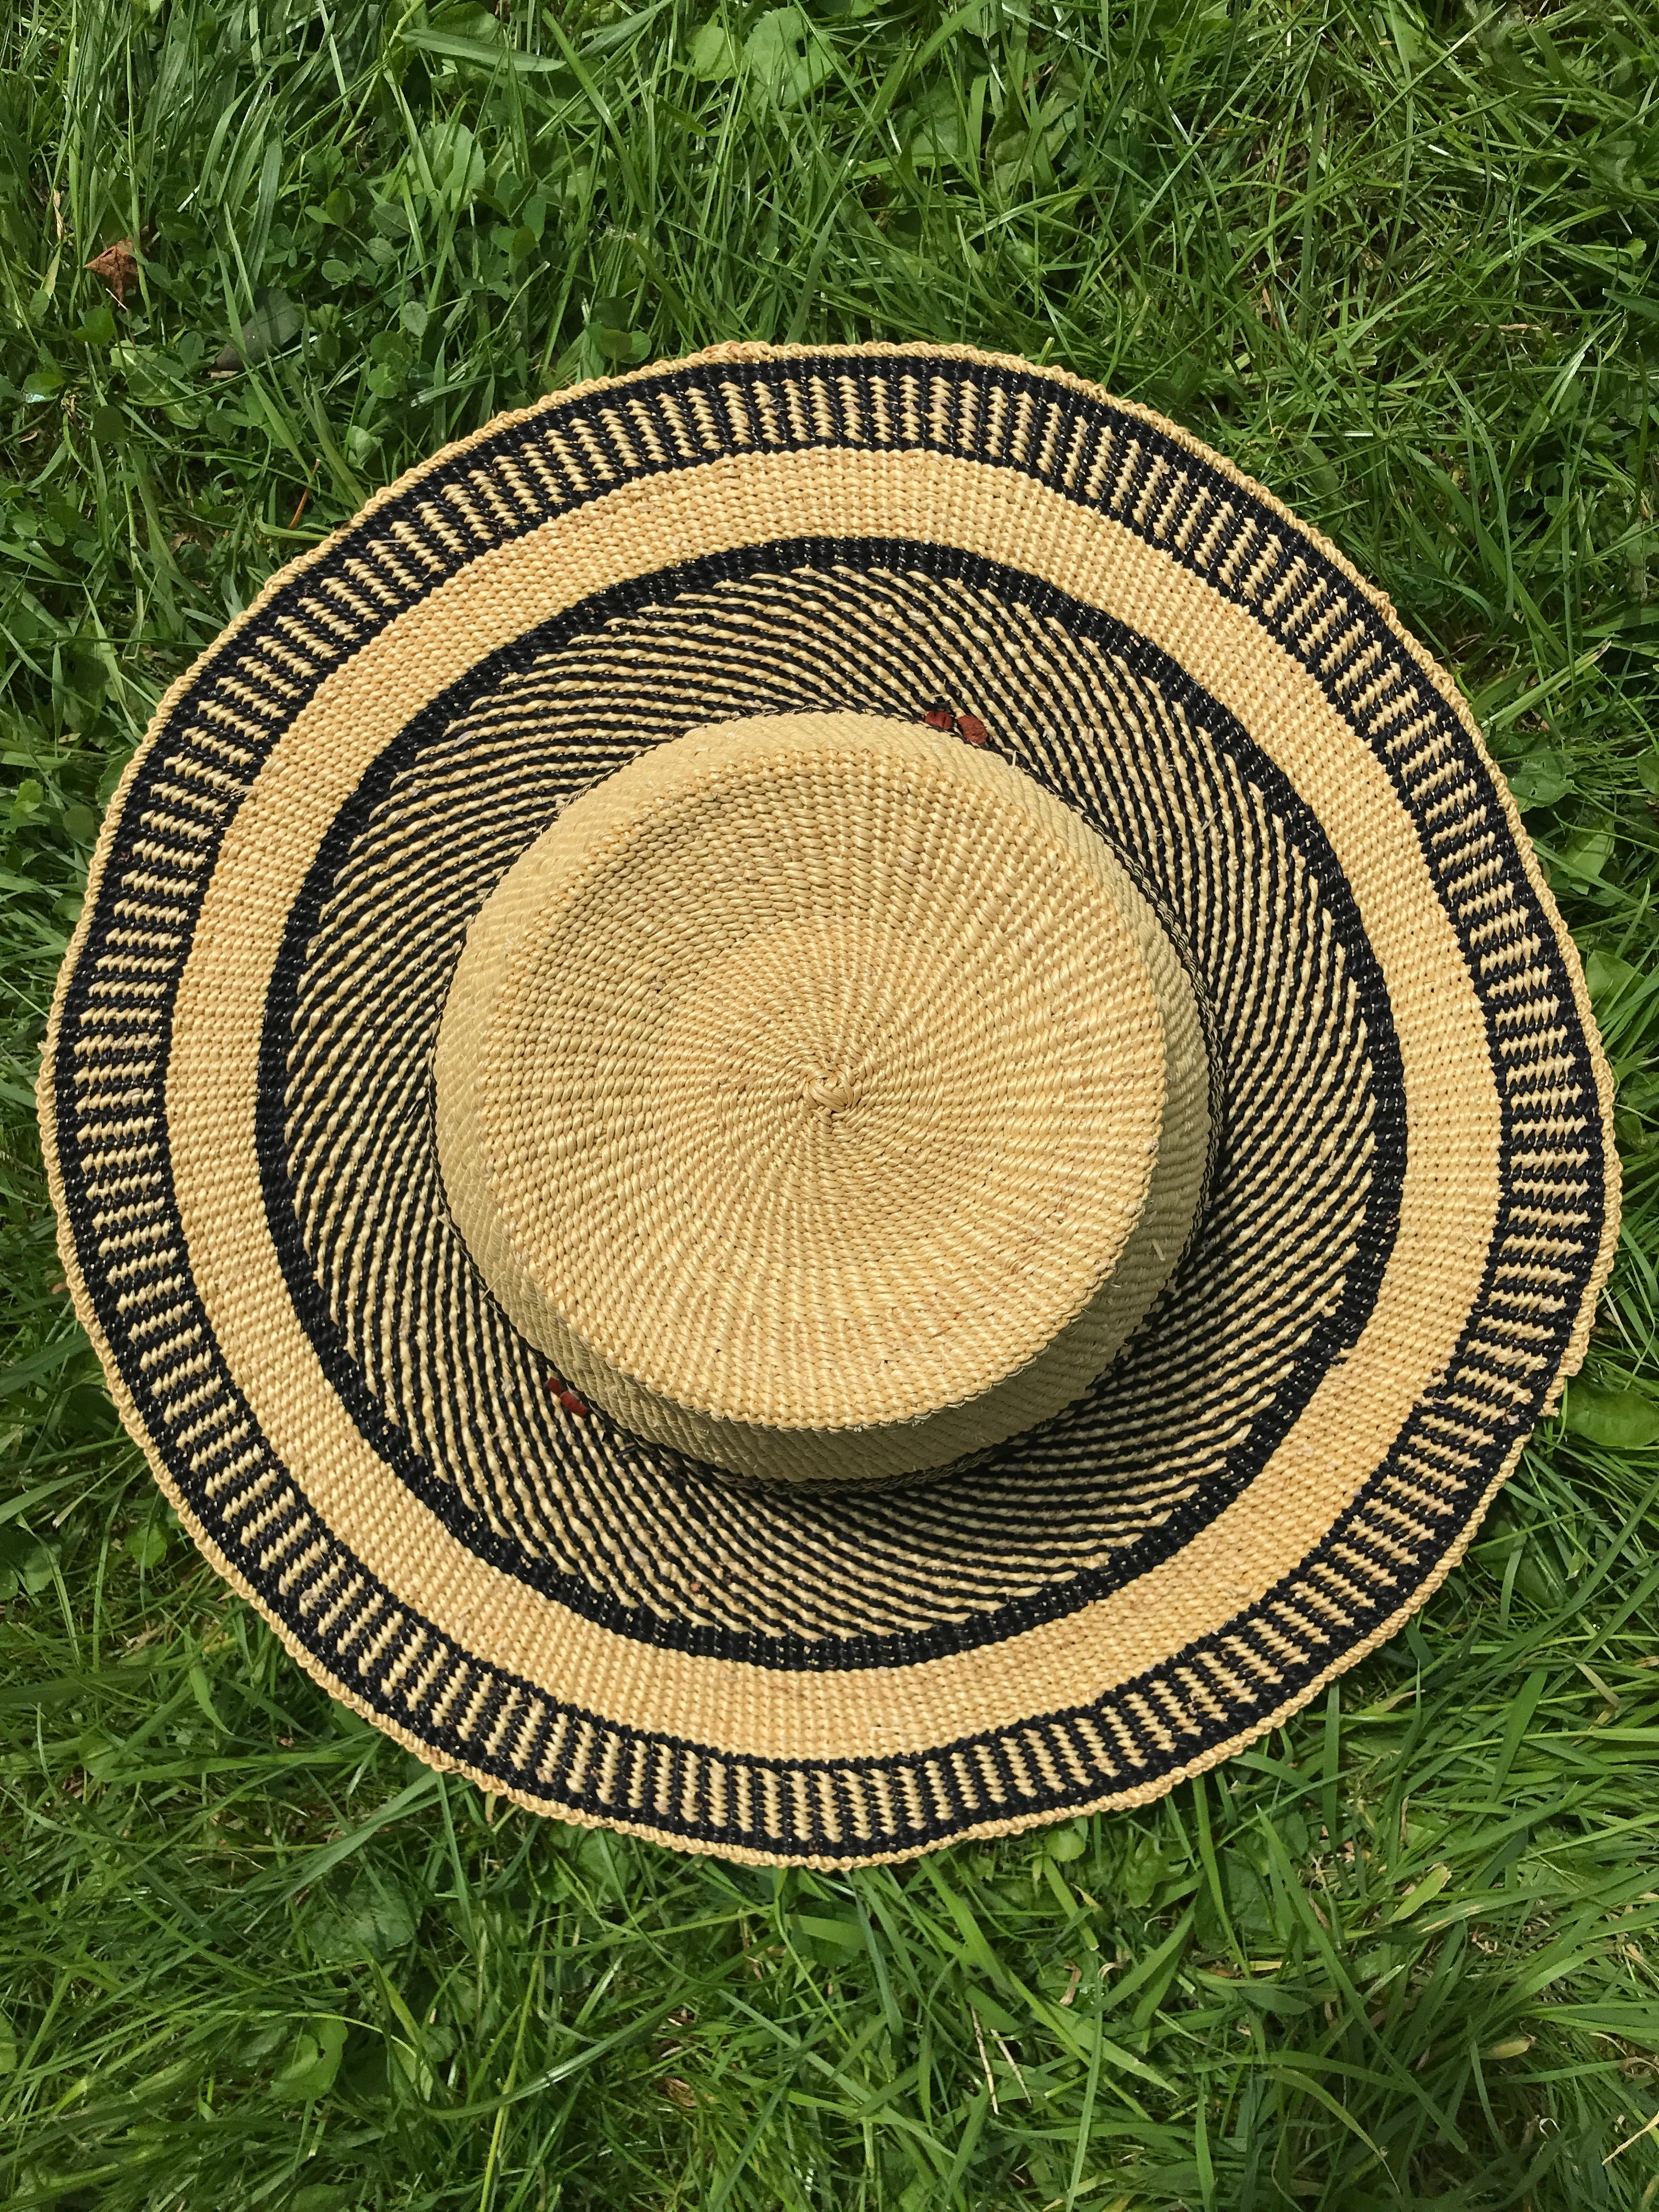 Handwoven straw hat from Ghana, natural grass and navy pattern